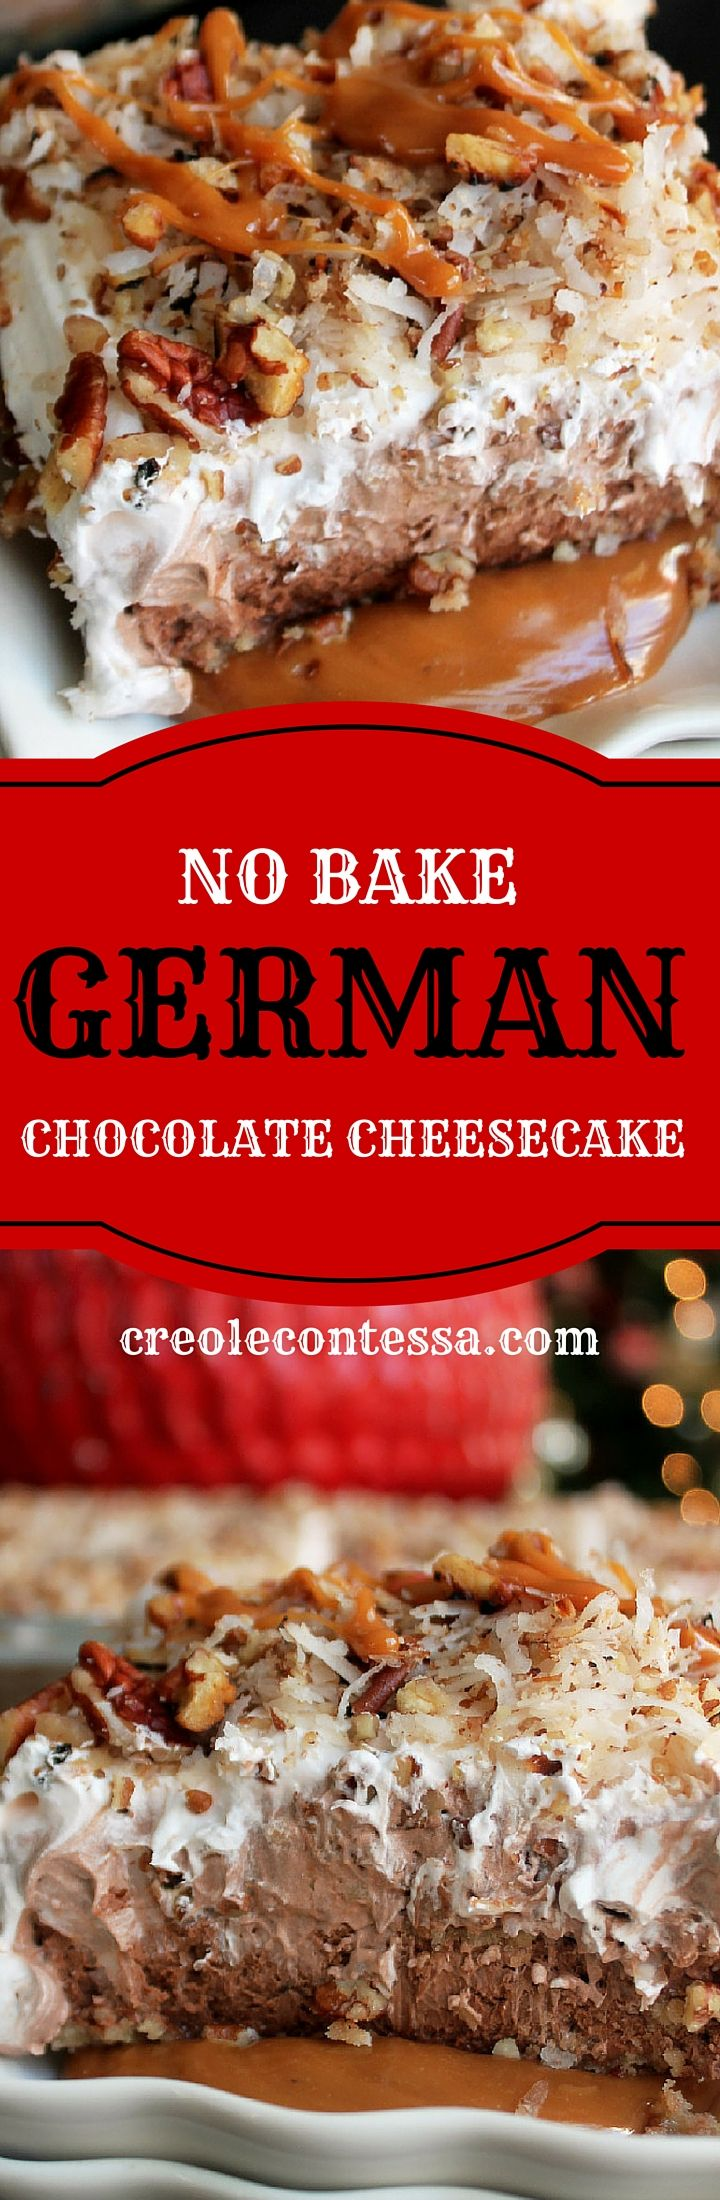 No Bake German Chocolate Cheesecake-Creole Contessa #SweetenTheSeason #CollectiveBias #ad